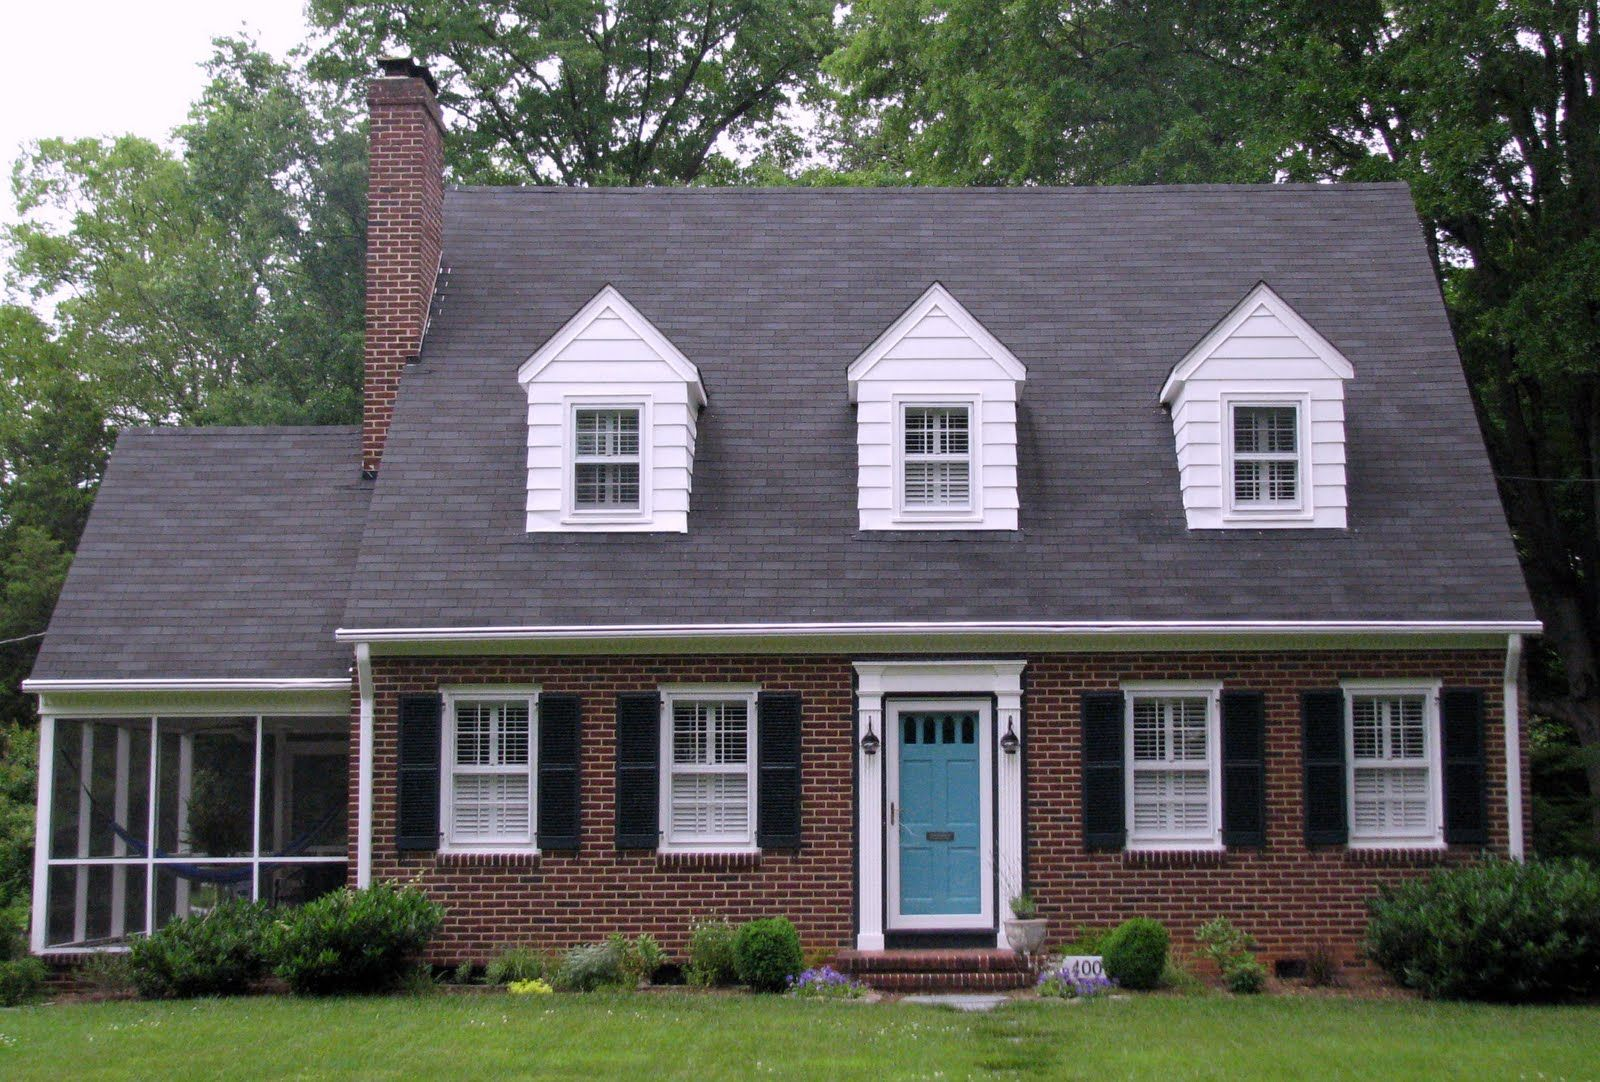 brick colors for house exterior | isn't that crazy! oh, the